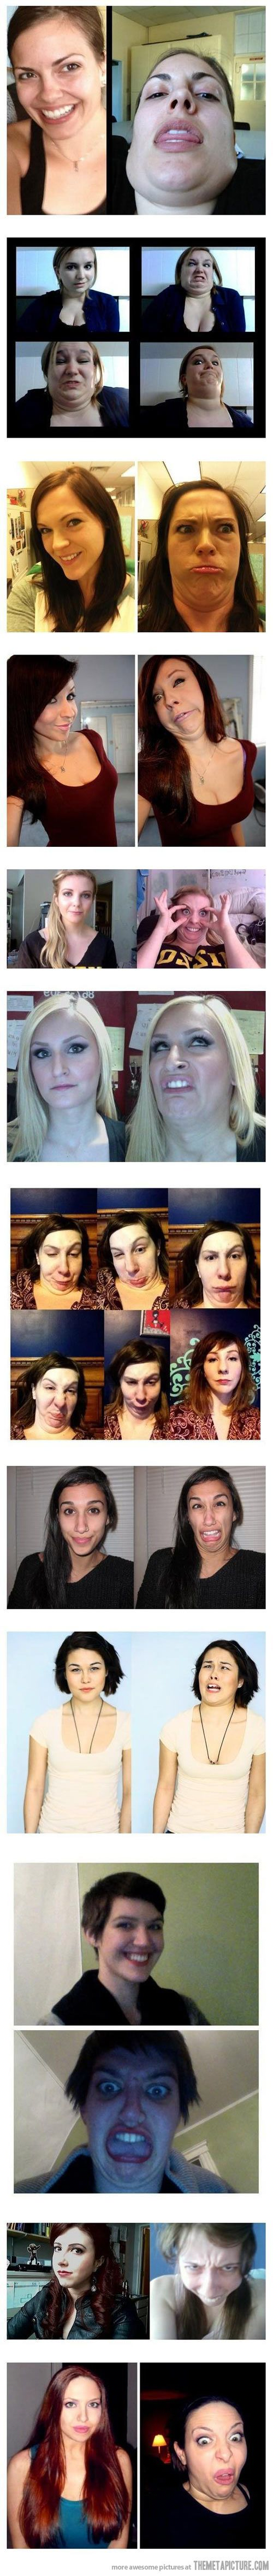 When you're feeling down or insecure about your looks, remember these photos. Beautiful ppl make some freakin weird faces just like you! Bwahaha